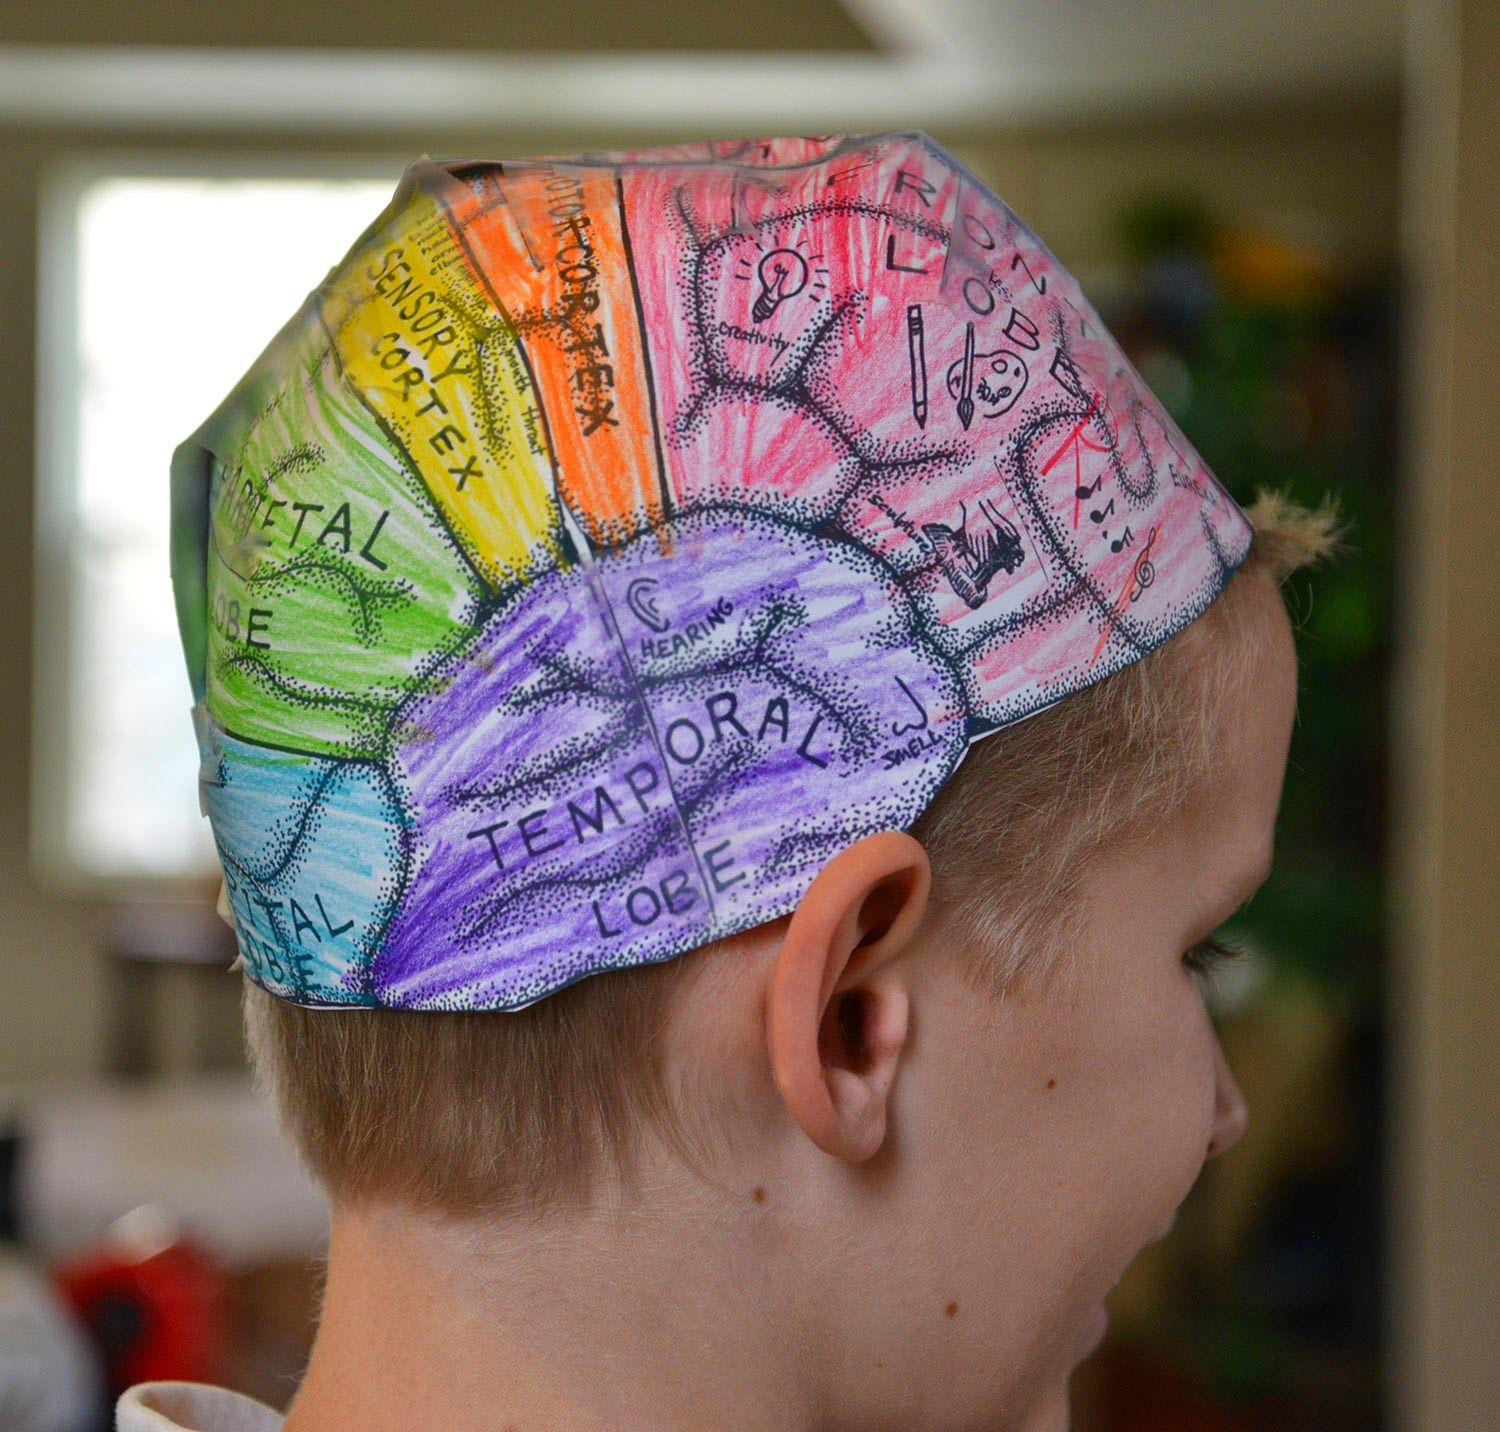 We Loved Making This Brain Hat While We Talked About Parts